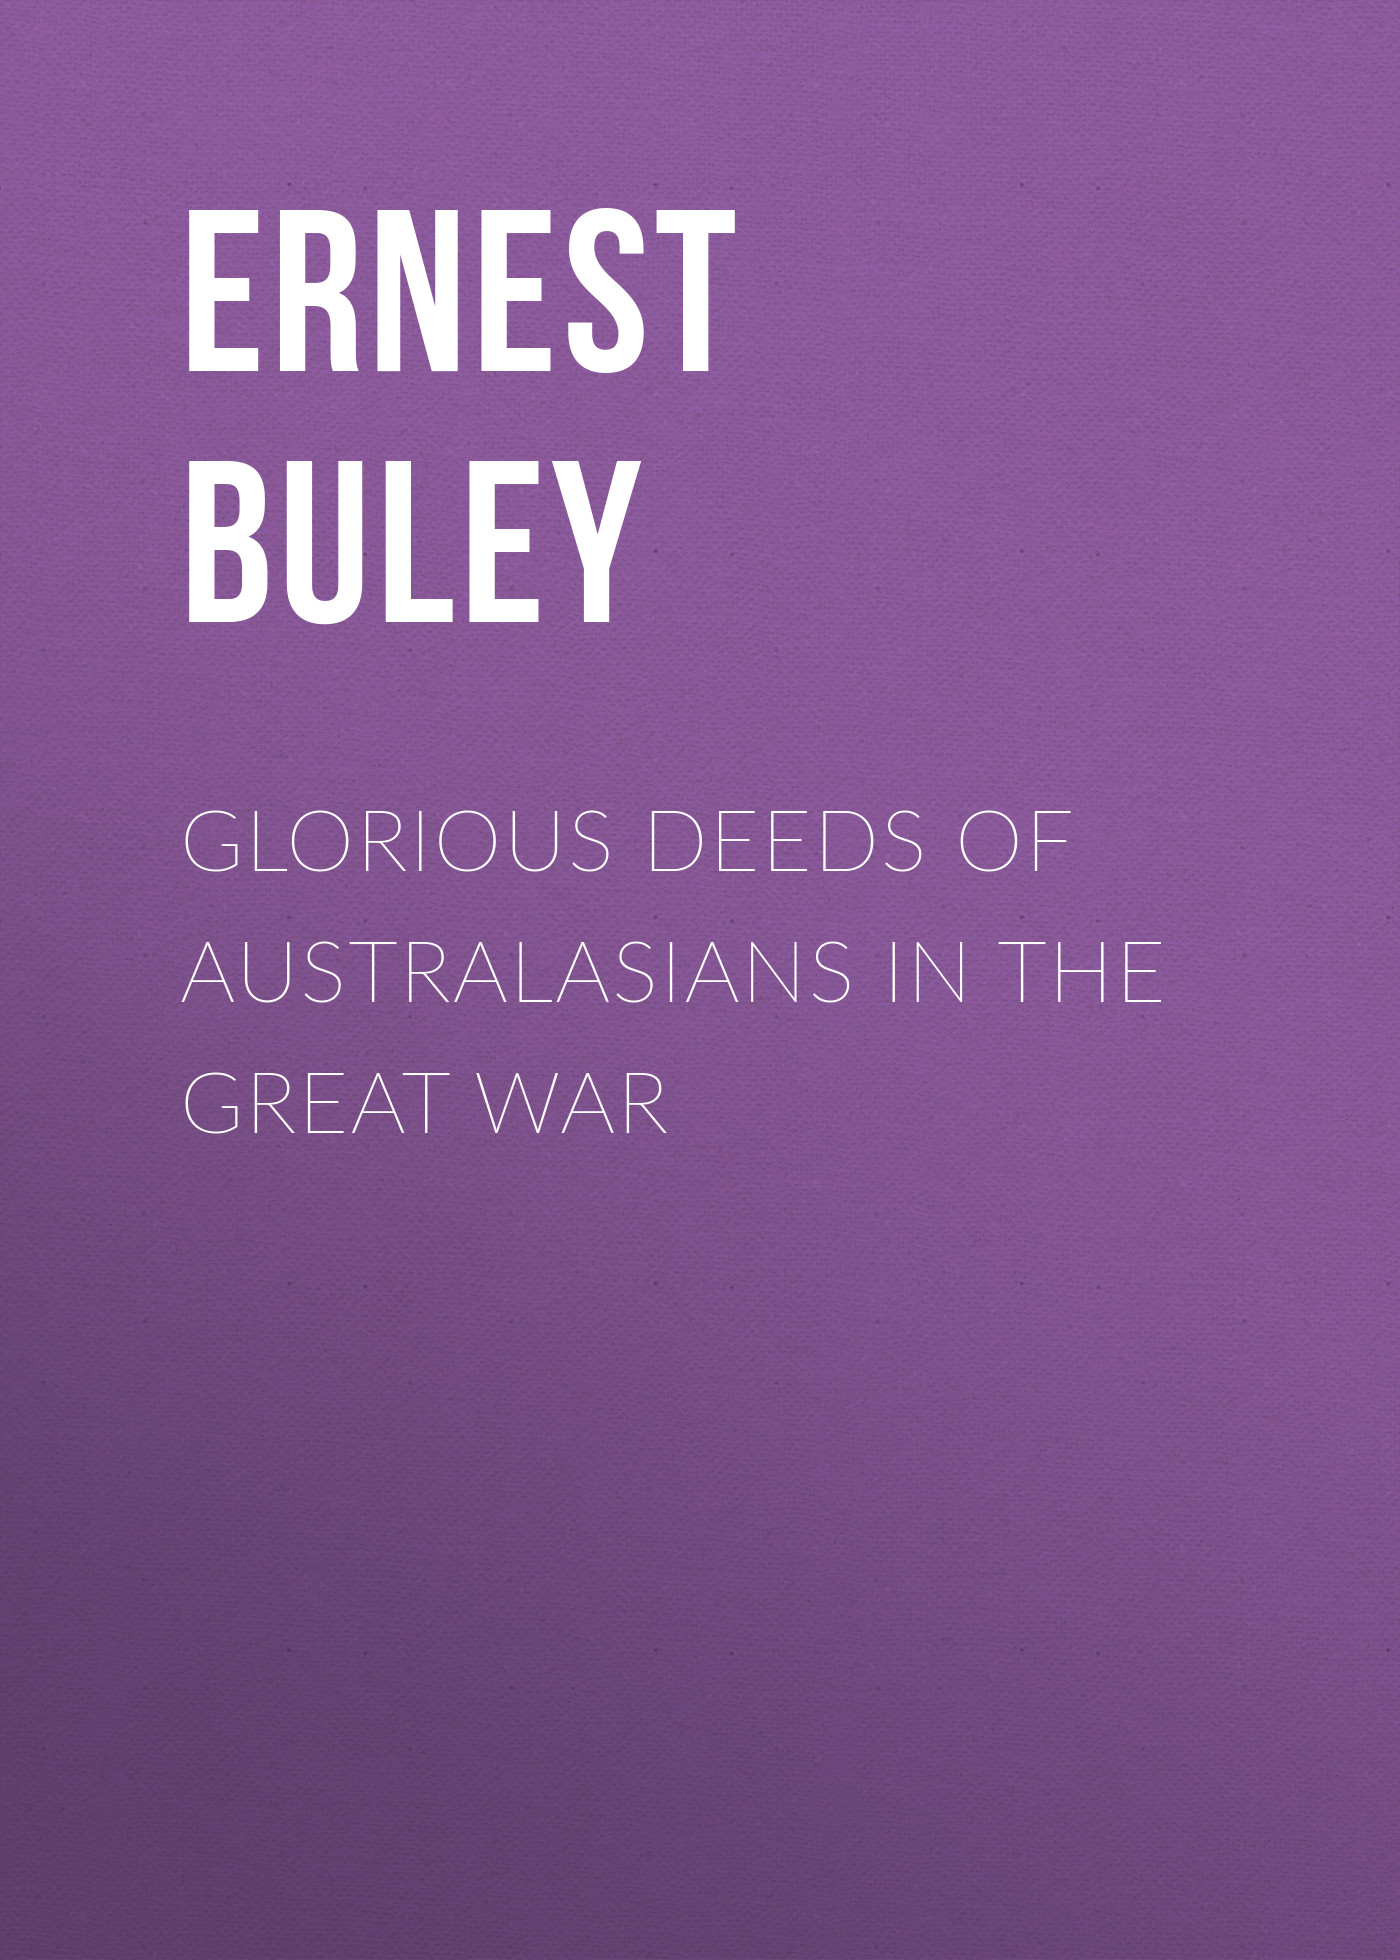 Buley Ernest Charles Glorious Deeds of Australasians in the Great War